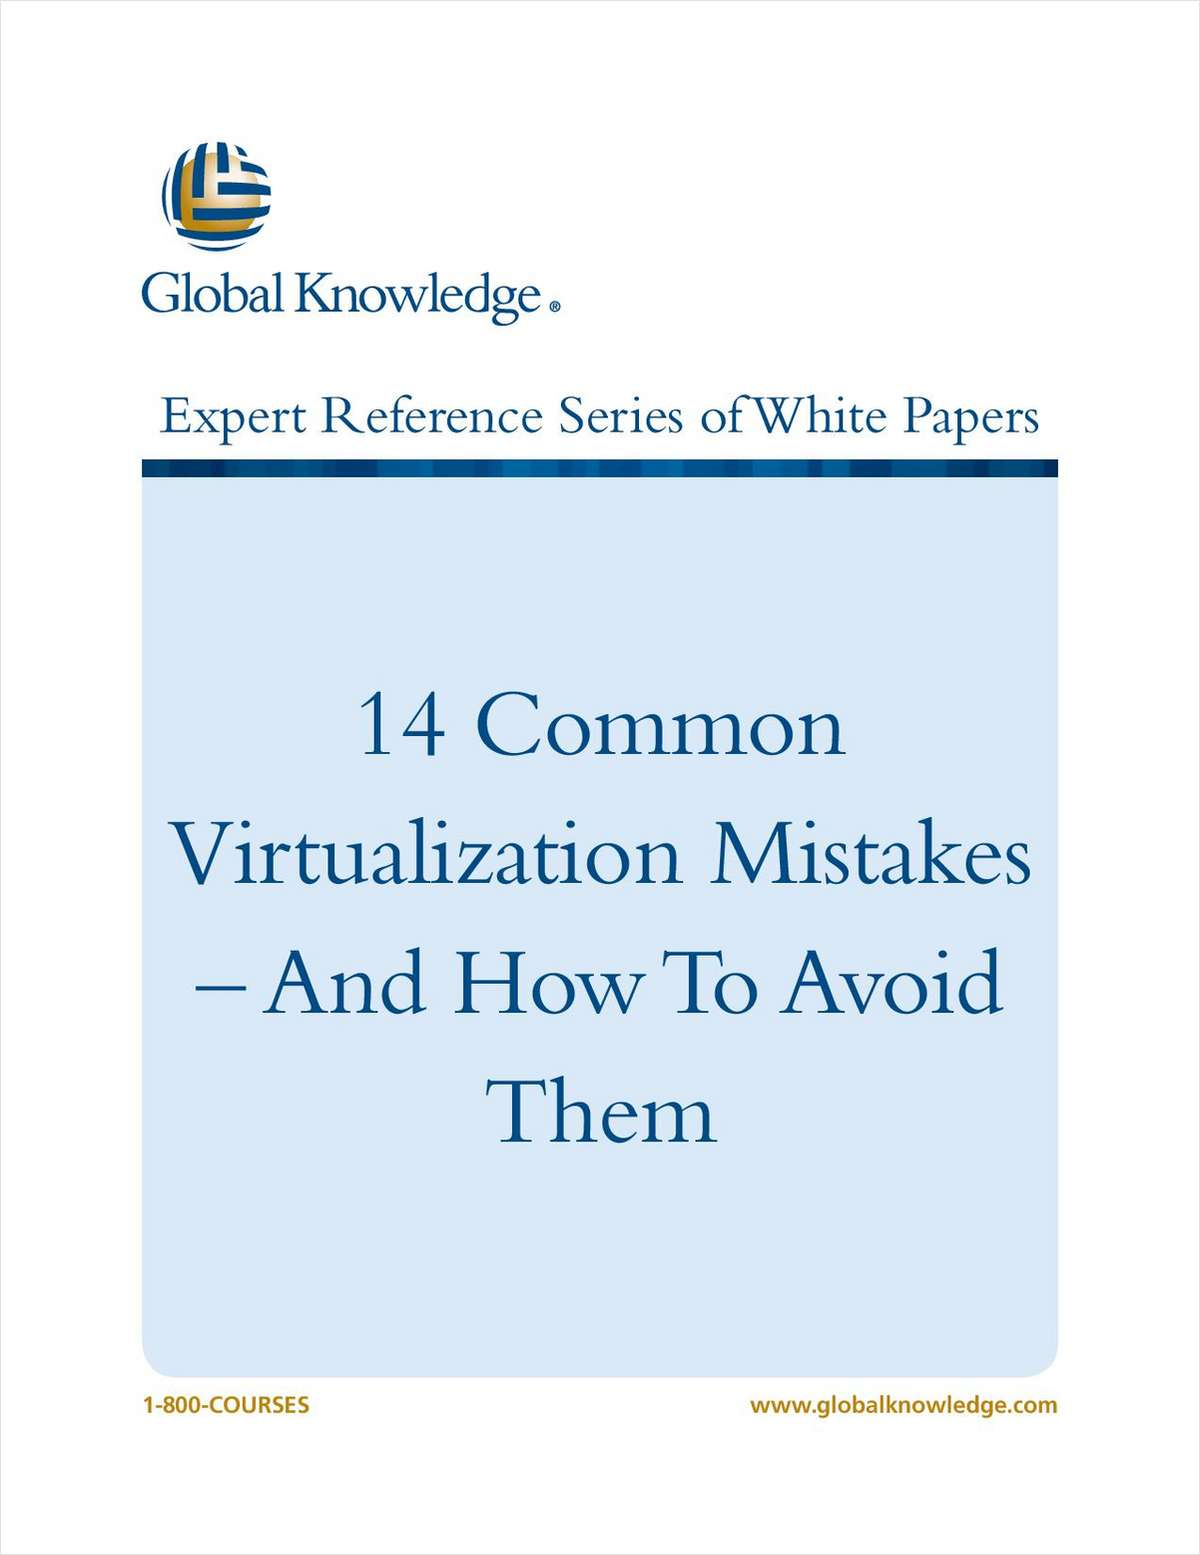 14 Common Virtualization Mistakes - And How To Avoid Them